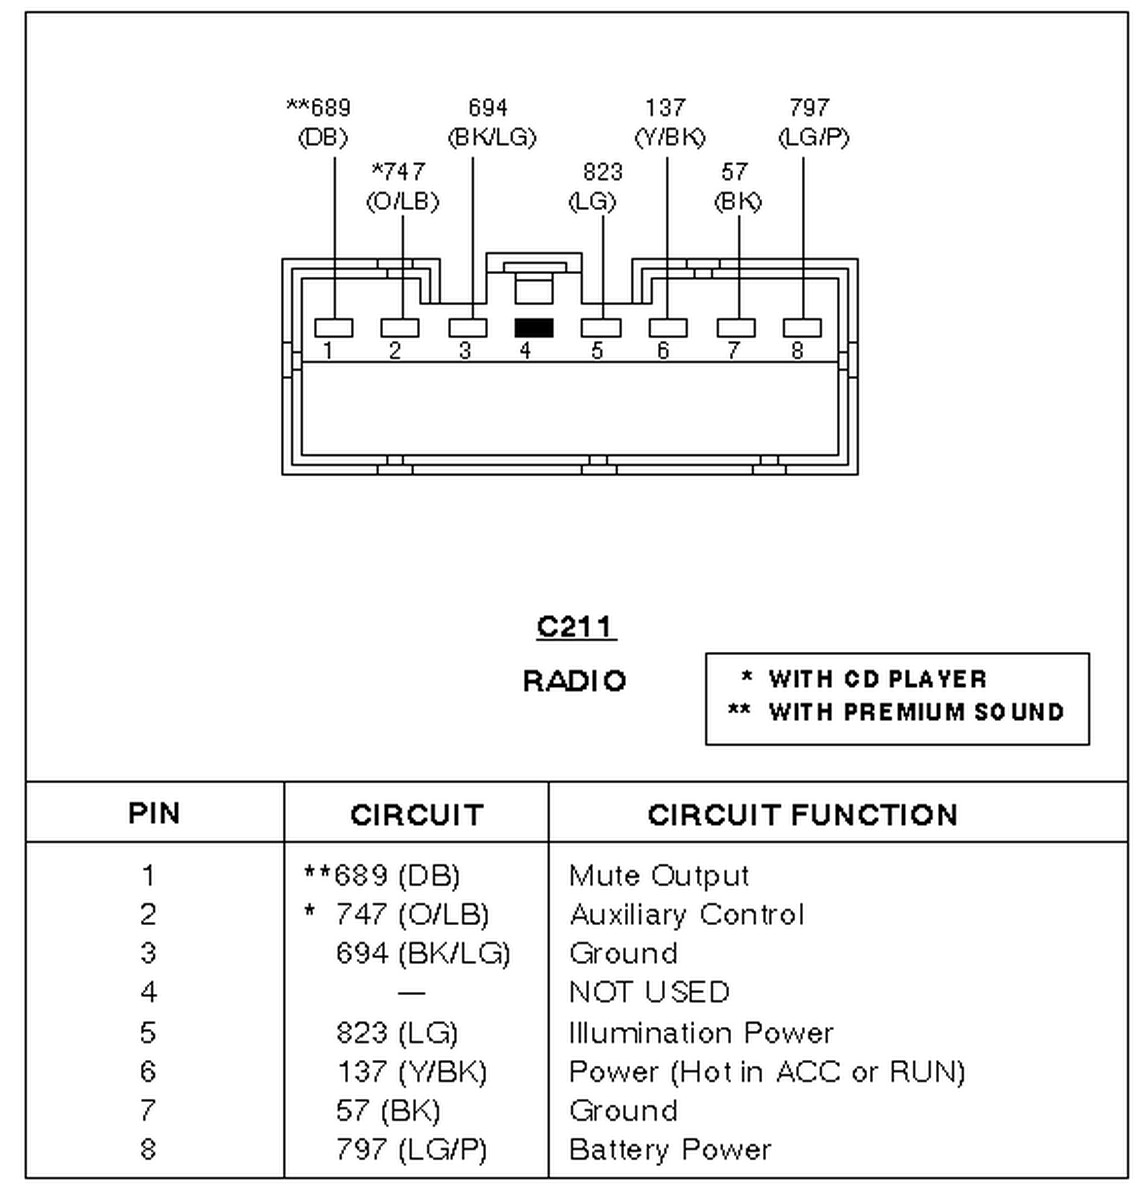 1996 ford explorer jbl radio wiring diagram Collection-1995 Ford Explorer Stereo  Wiring Diagram Westmagazine